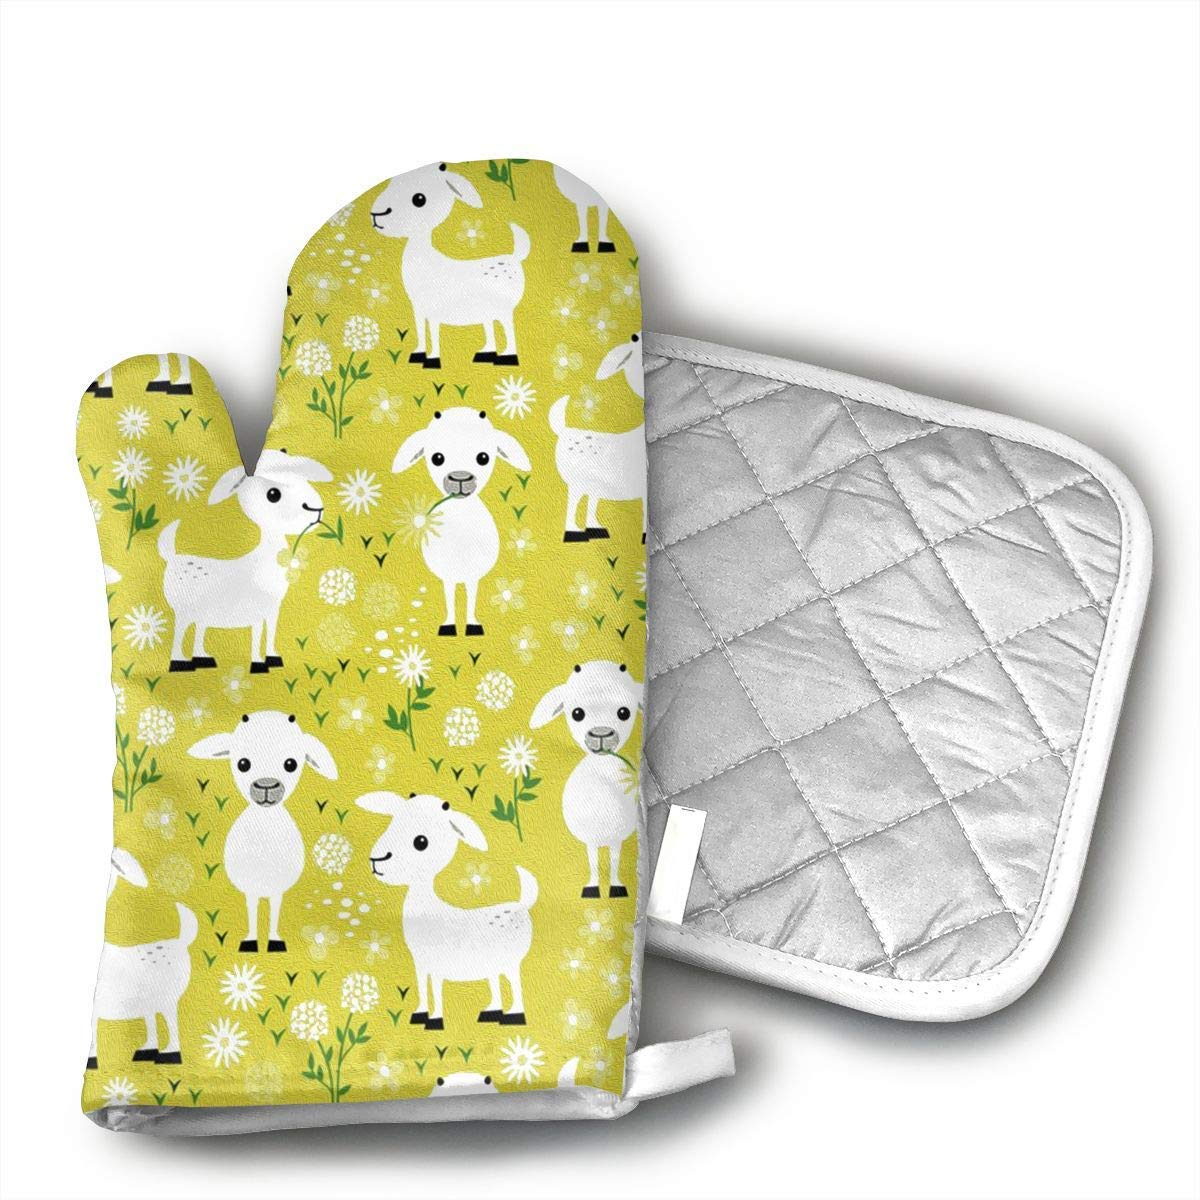 KUGUANG Yellow Baby Goats@Oven Mitts, Non-Slip Silicone Oven Mitts, Extra Long Kitchen Mitts, Heat Resistant to 500!aF Kitchen Oven Gloves